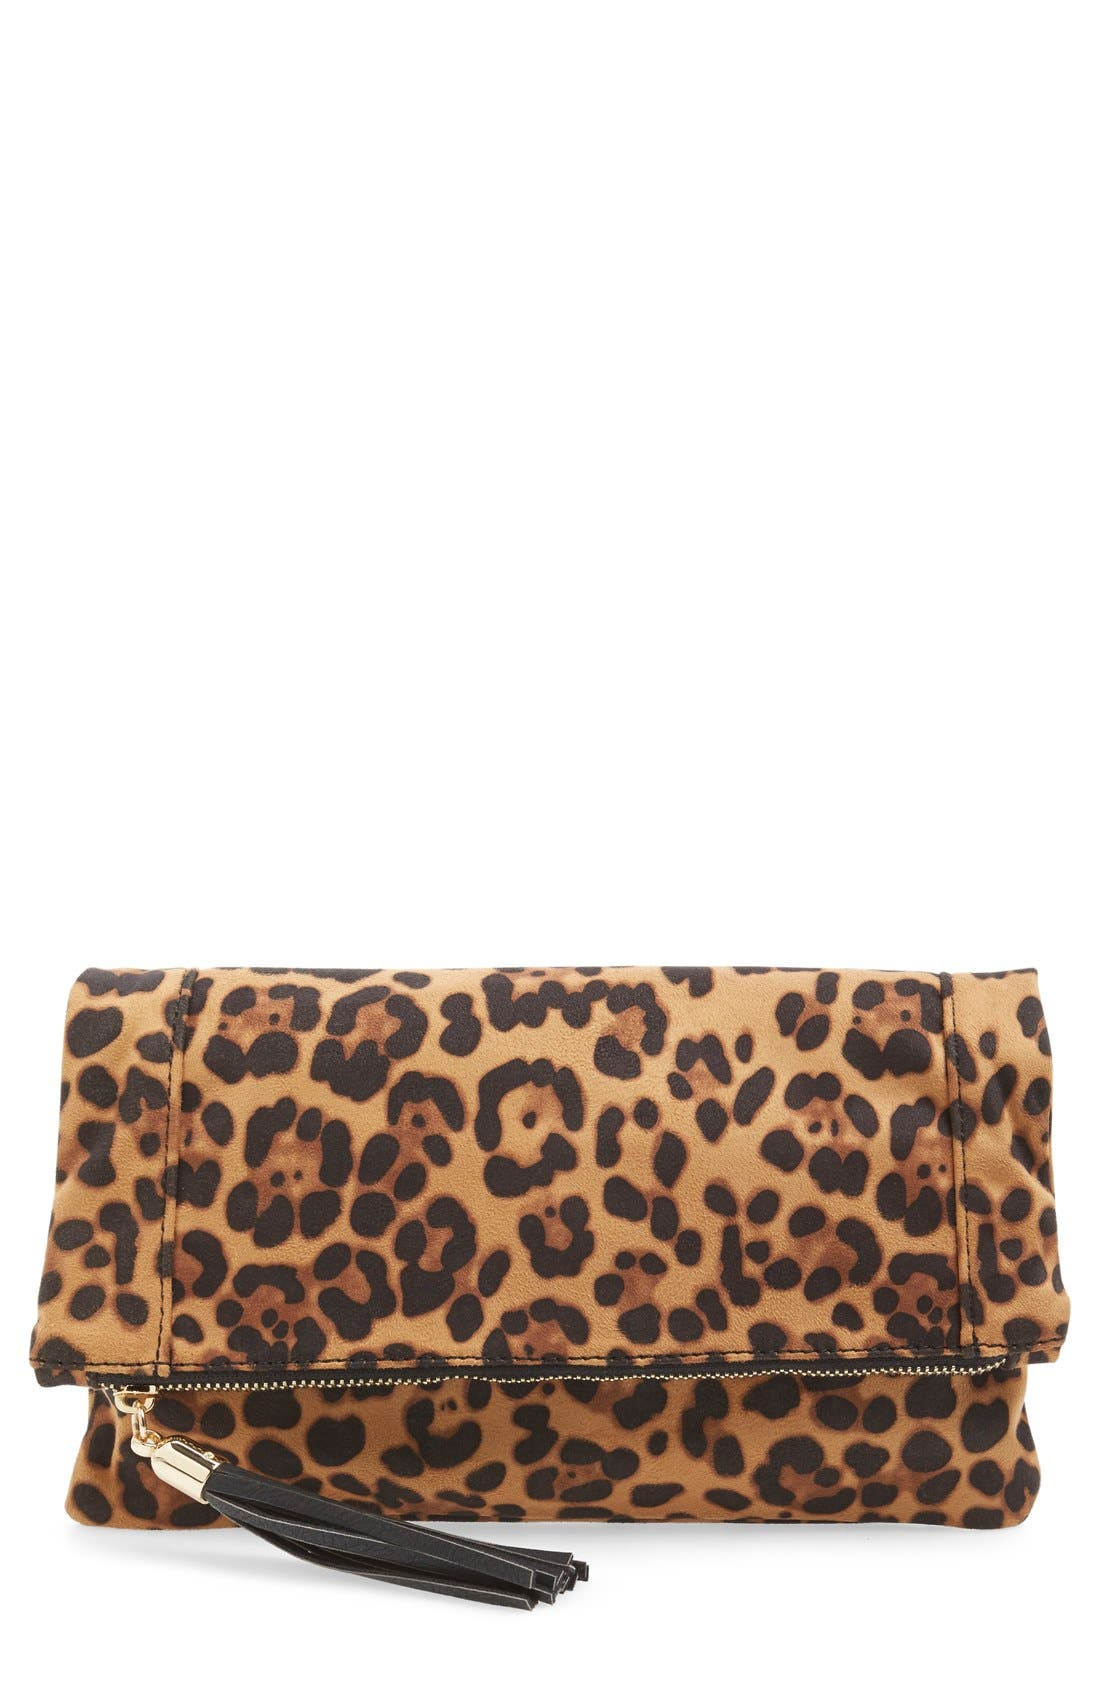 Alternate Image 1 Selected - Sole Society 'Tasia' Print Foldover Clutch